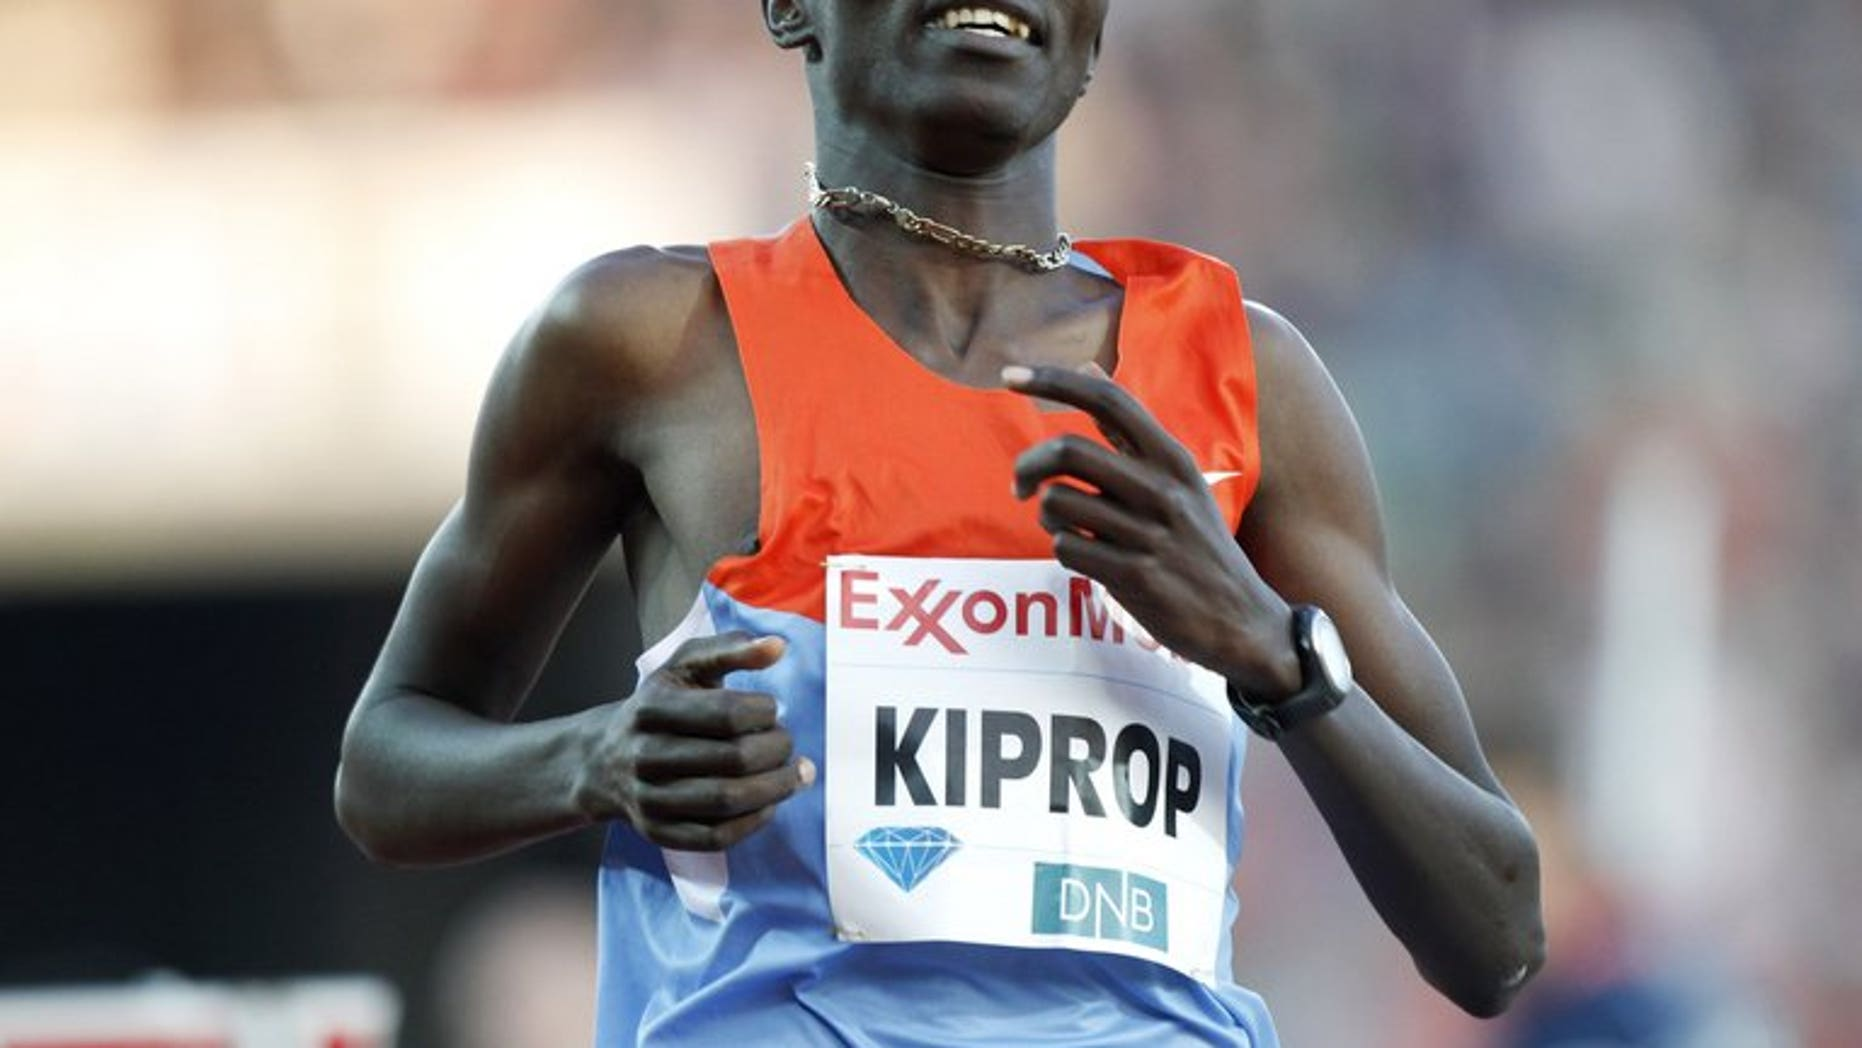 Kenya's former Olympic 1500m champion Asbel Kiprop, pictured in action on June 7, 2012, and compatriots Silas Kiplagat and Nixon Chepseba flopped when favourites to sweep the medals at the London Olympics and now want to make amends at the world championships in Moscow.